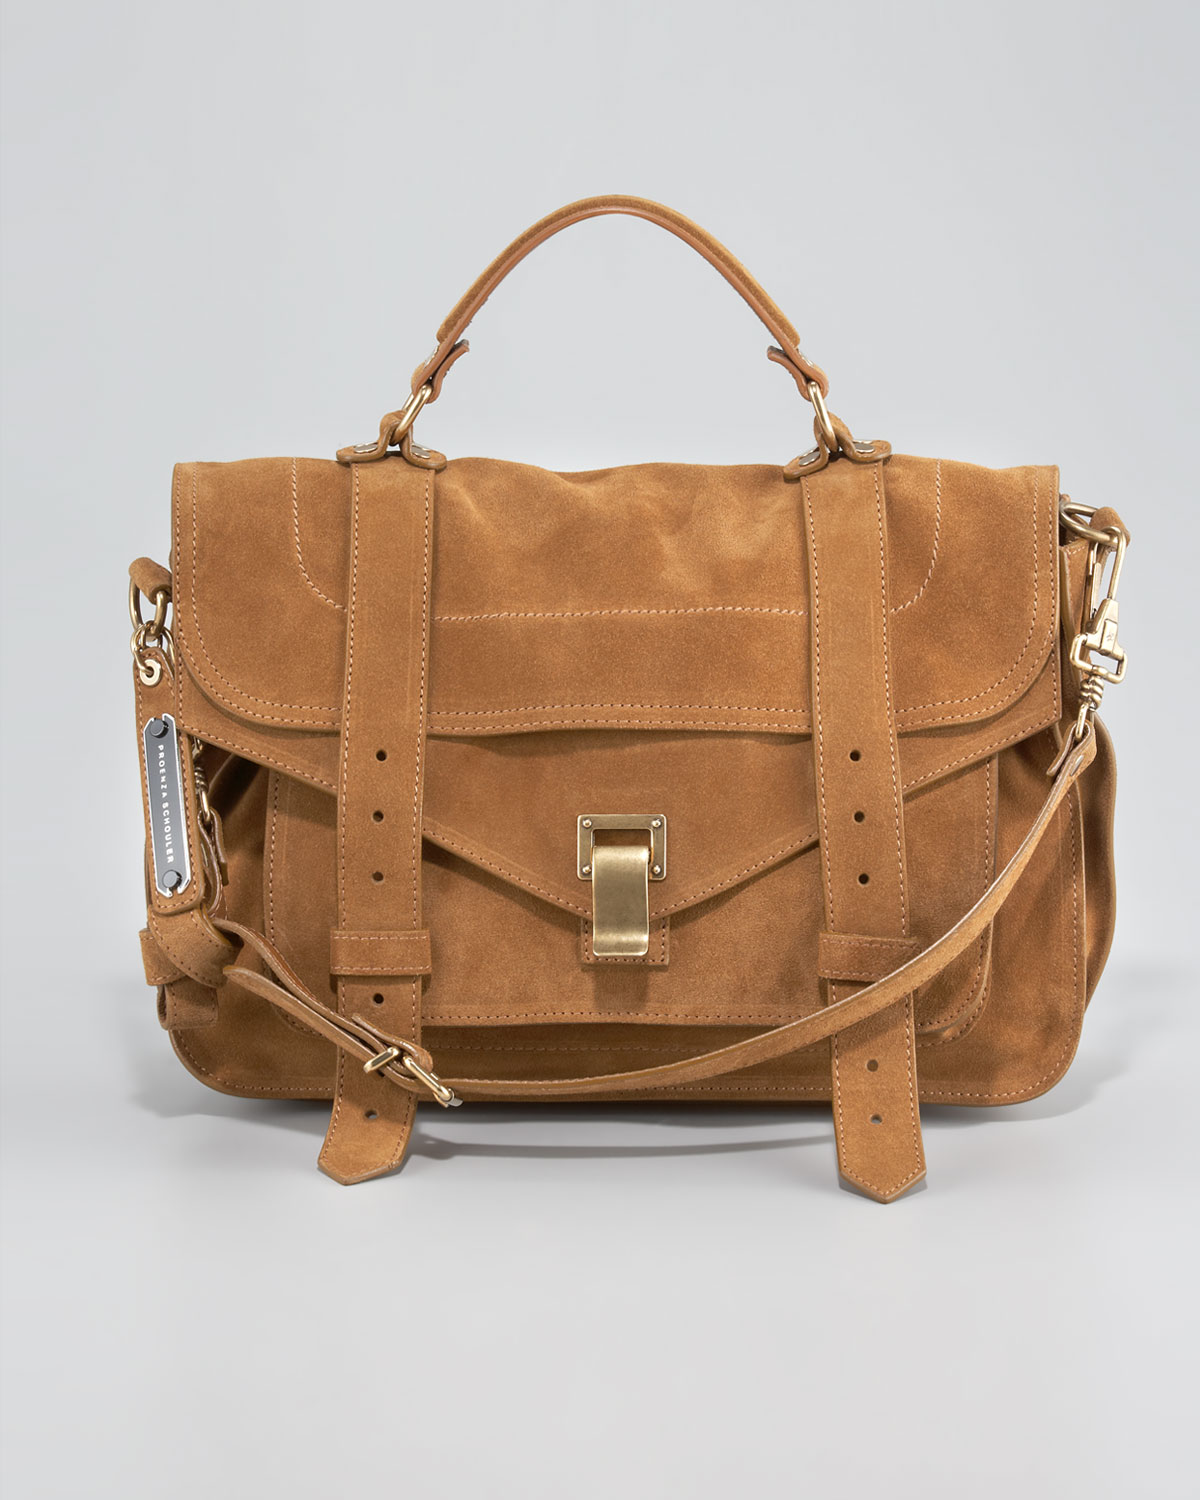 Proenza schouler Ps1 Medium Suede Satchel Bag Tobacco in Brown | Lyst